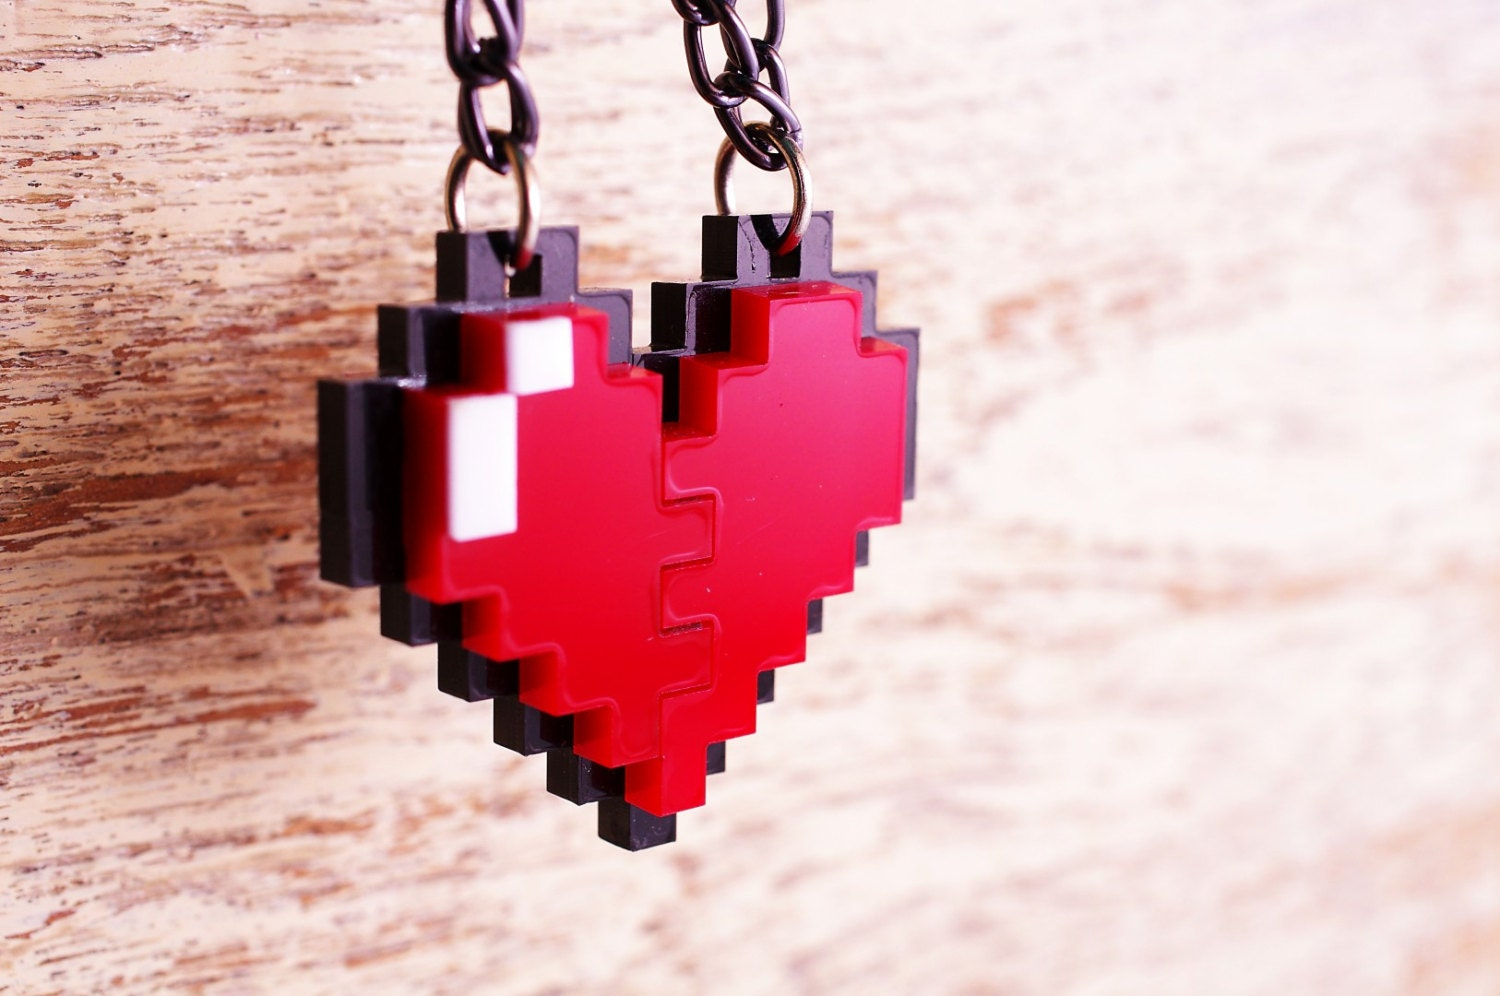 8 bit heart wallpaper  castl3t0n  Spoonflower